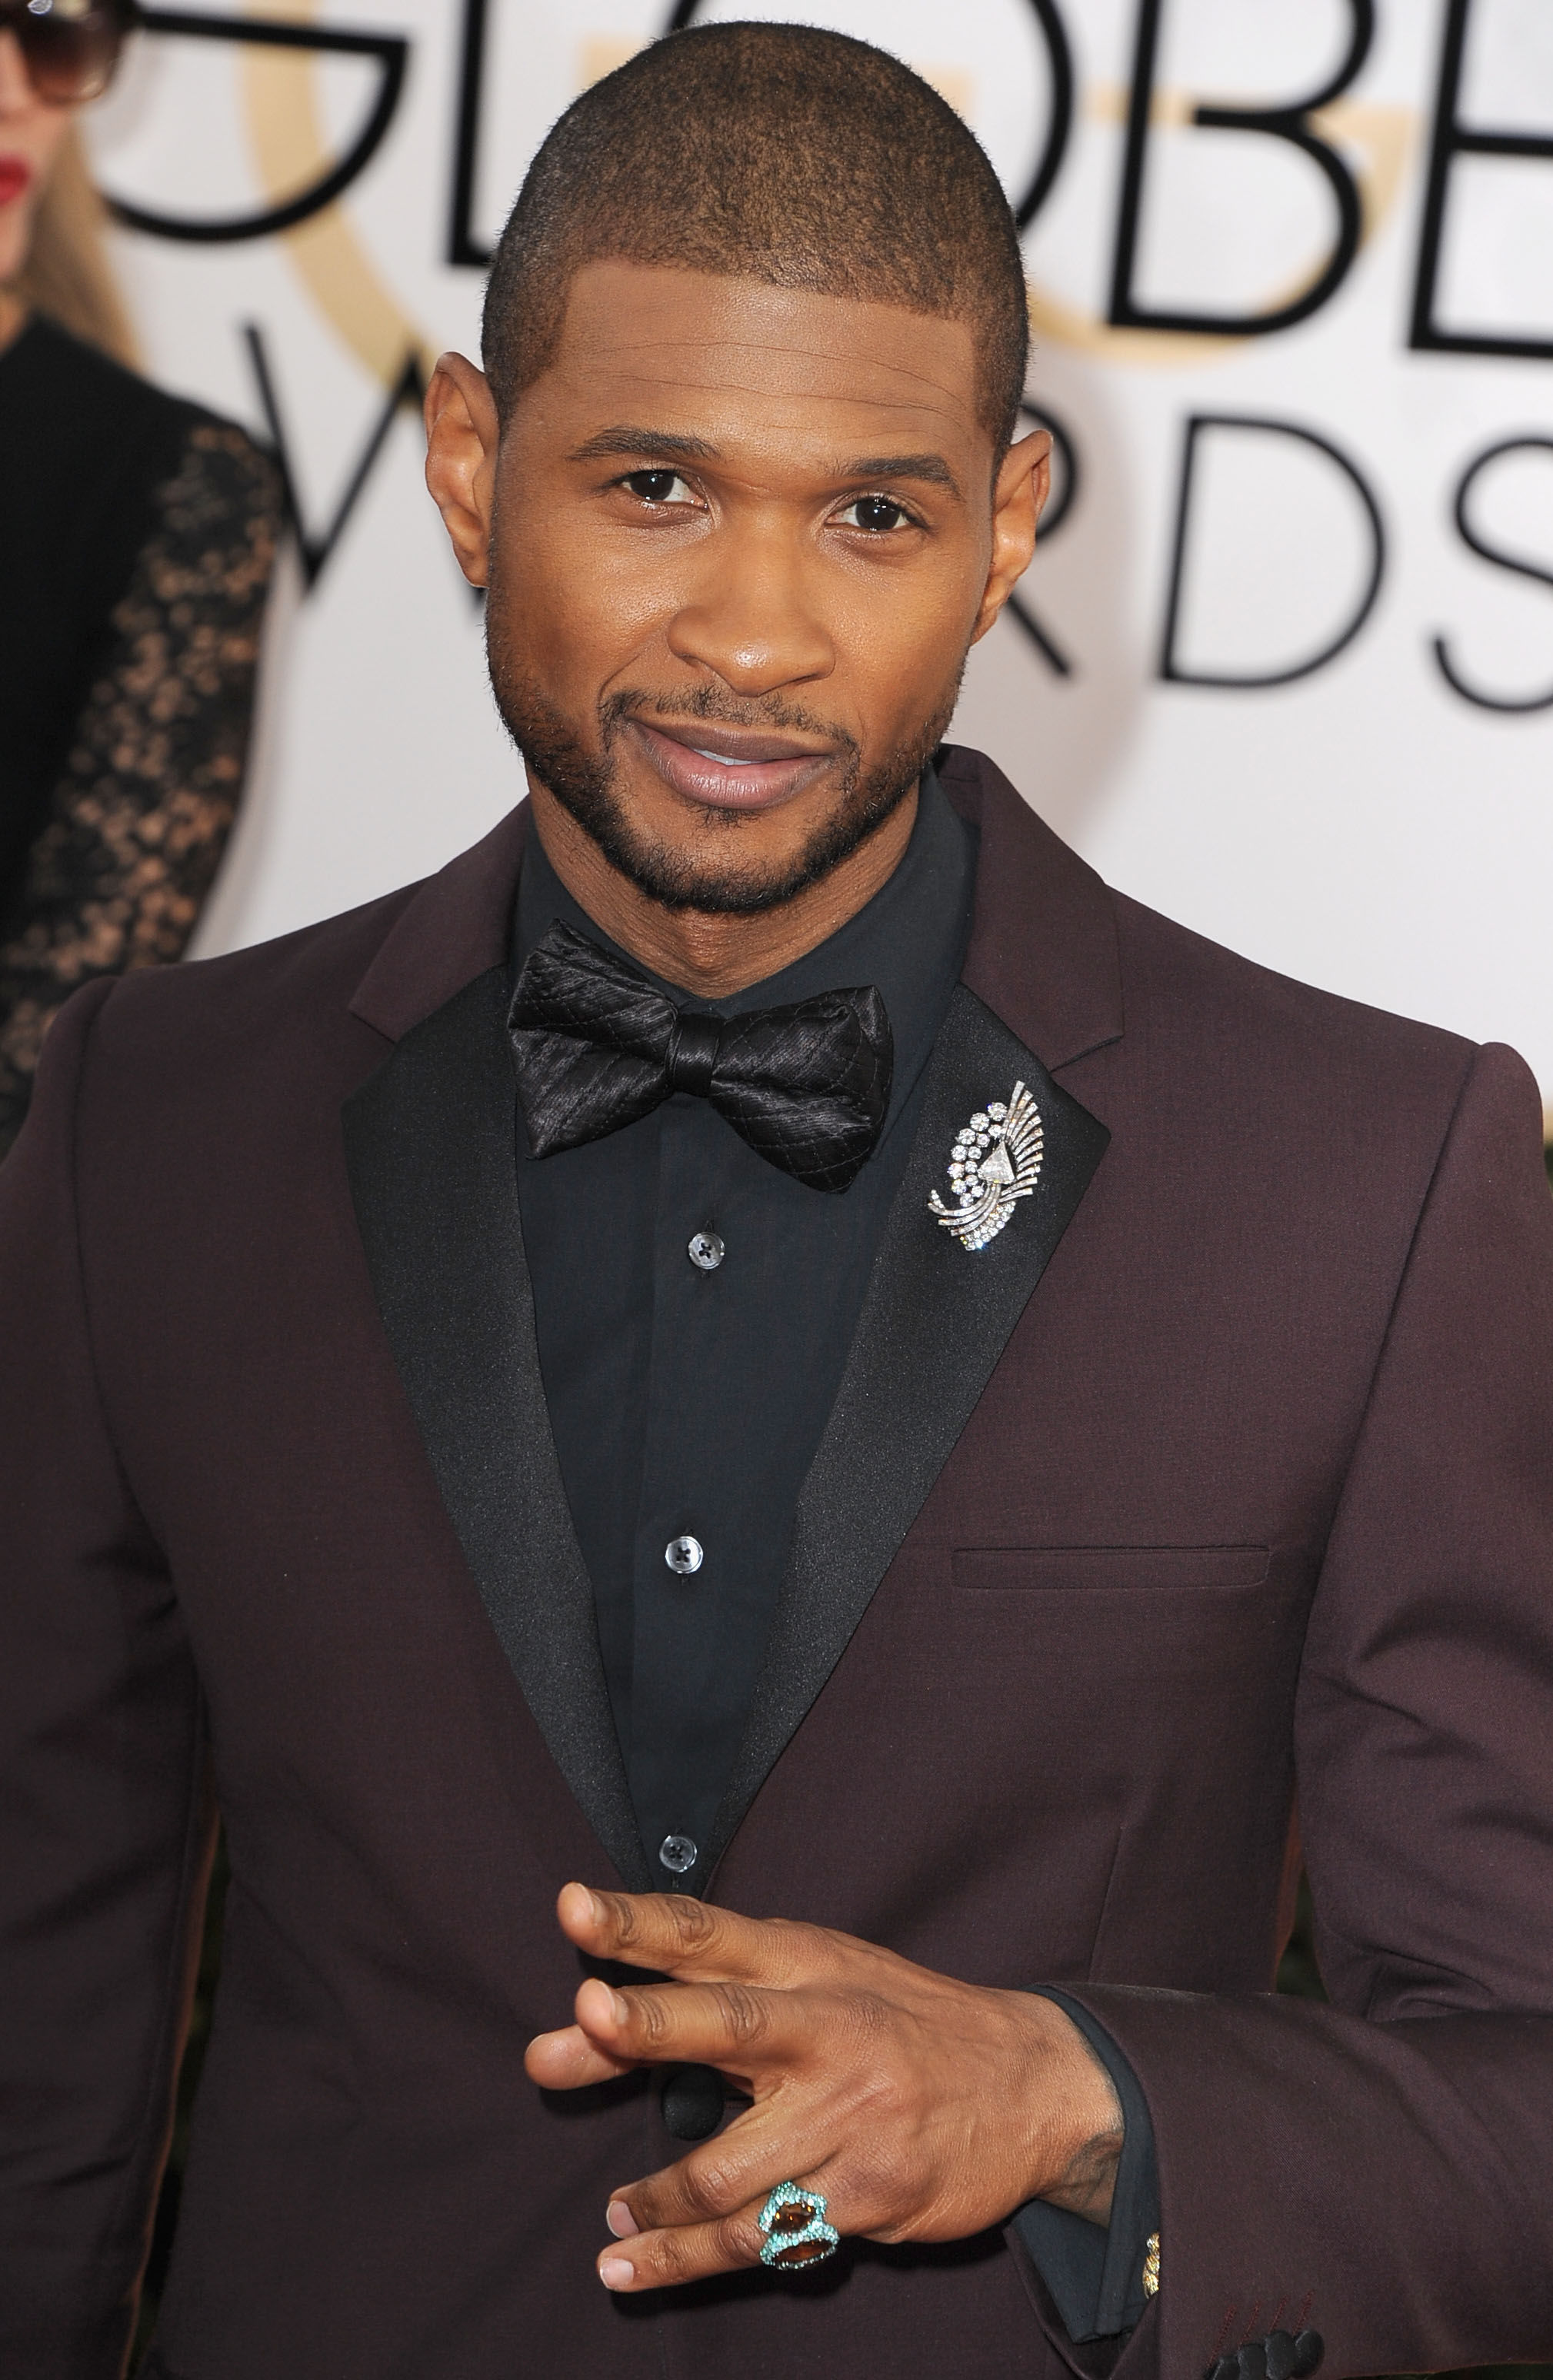 Usher Haircut Back View   Usher 2014 Haircut